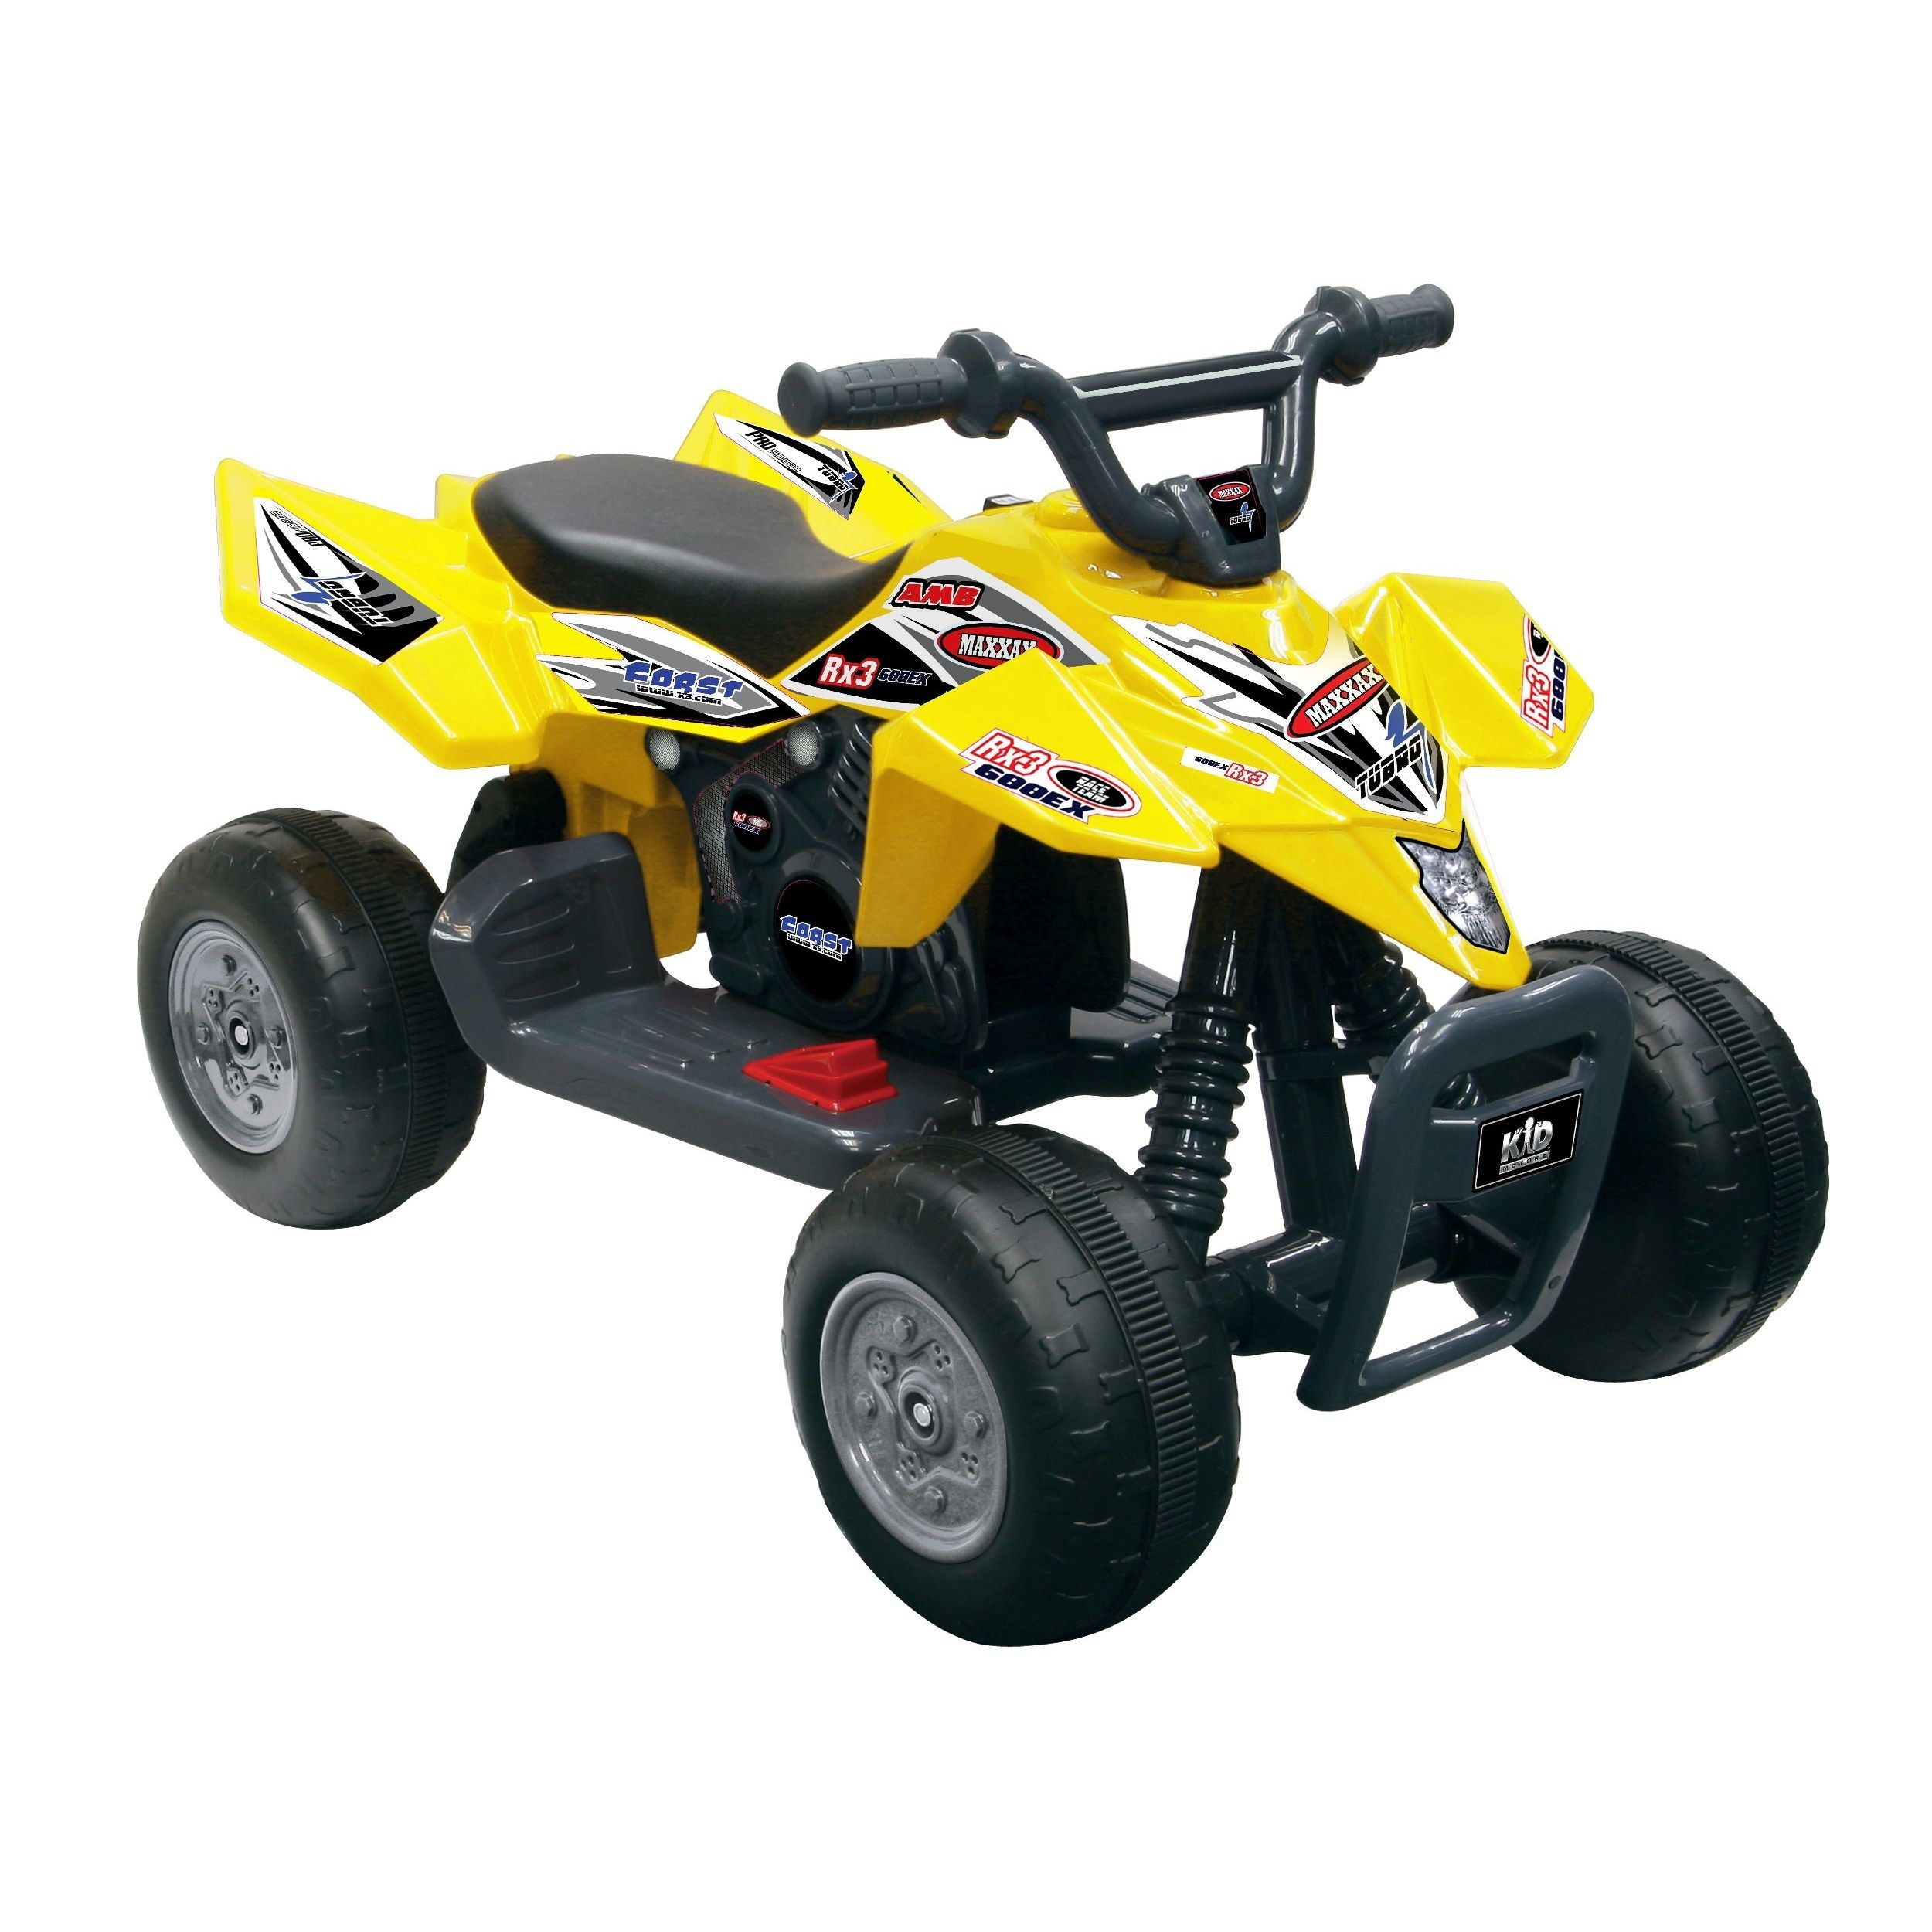 1eb4f835852b1 Kid Motorz Quad Racer 6-Volt Battery-Powered Ride-On - Yellow